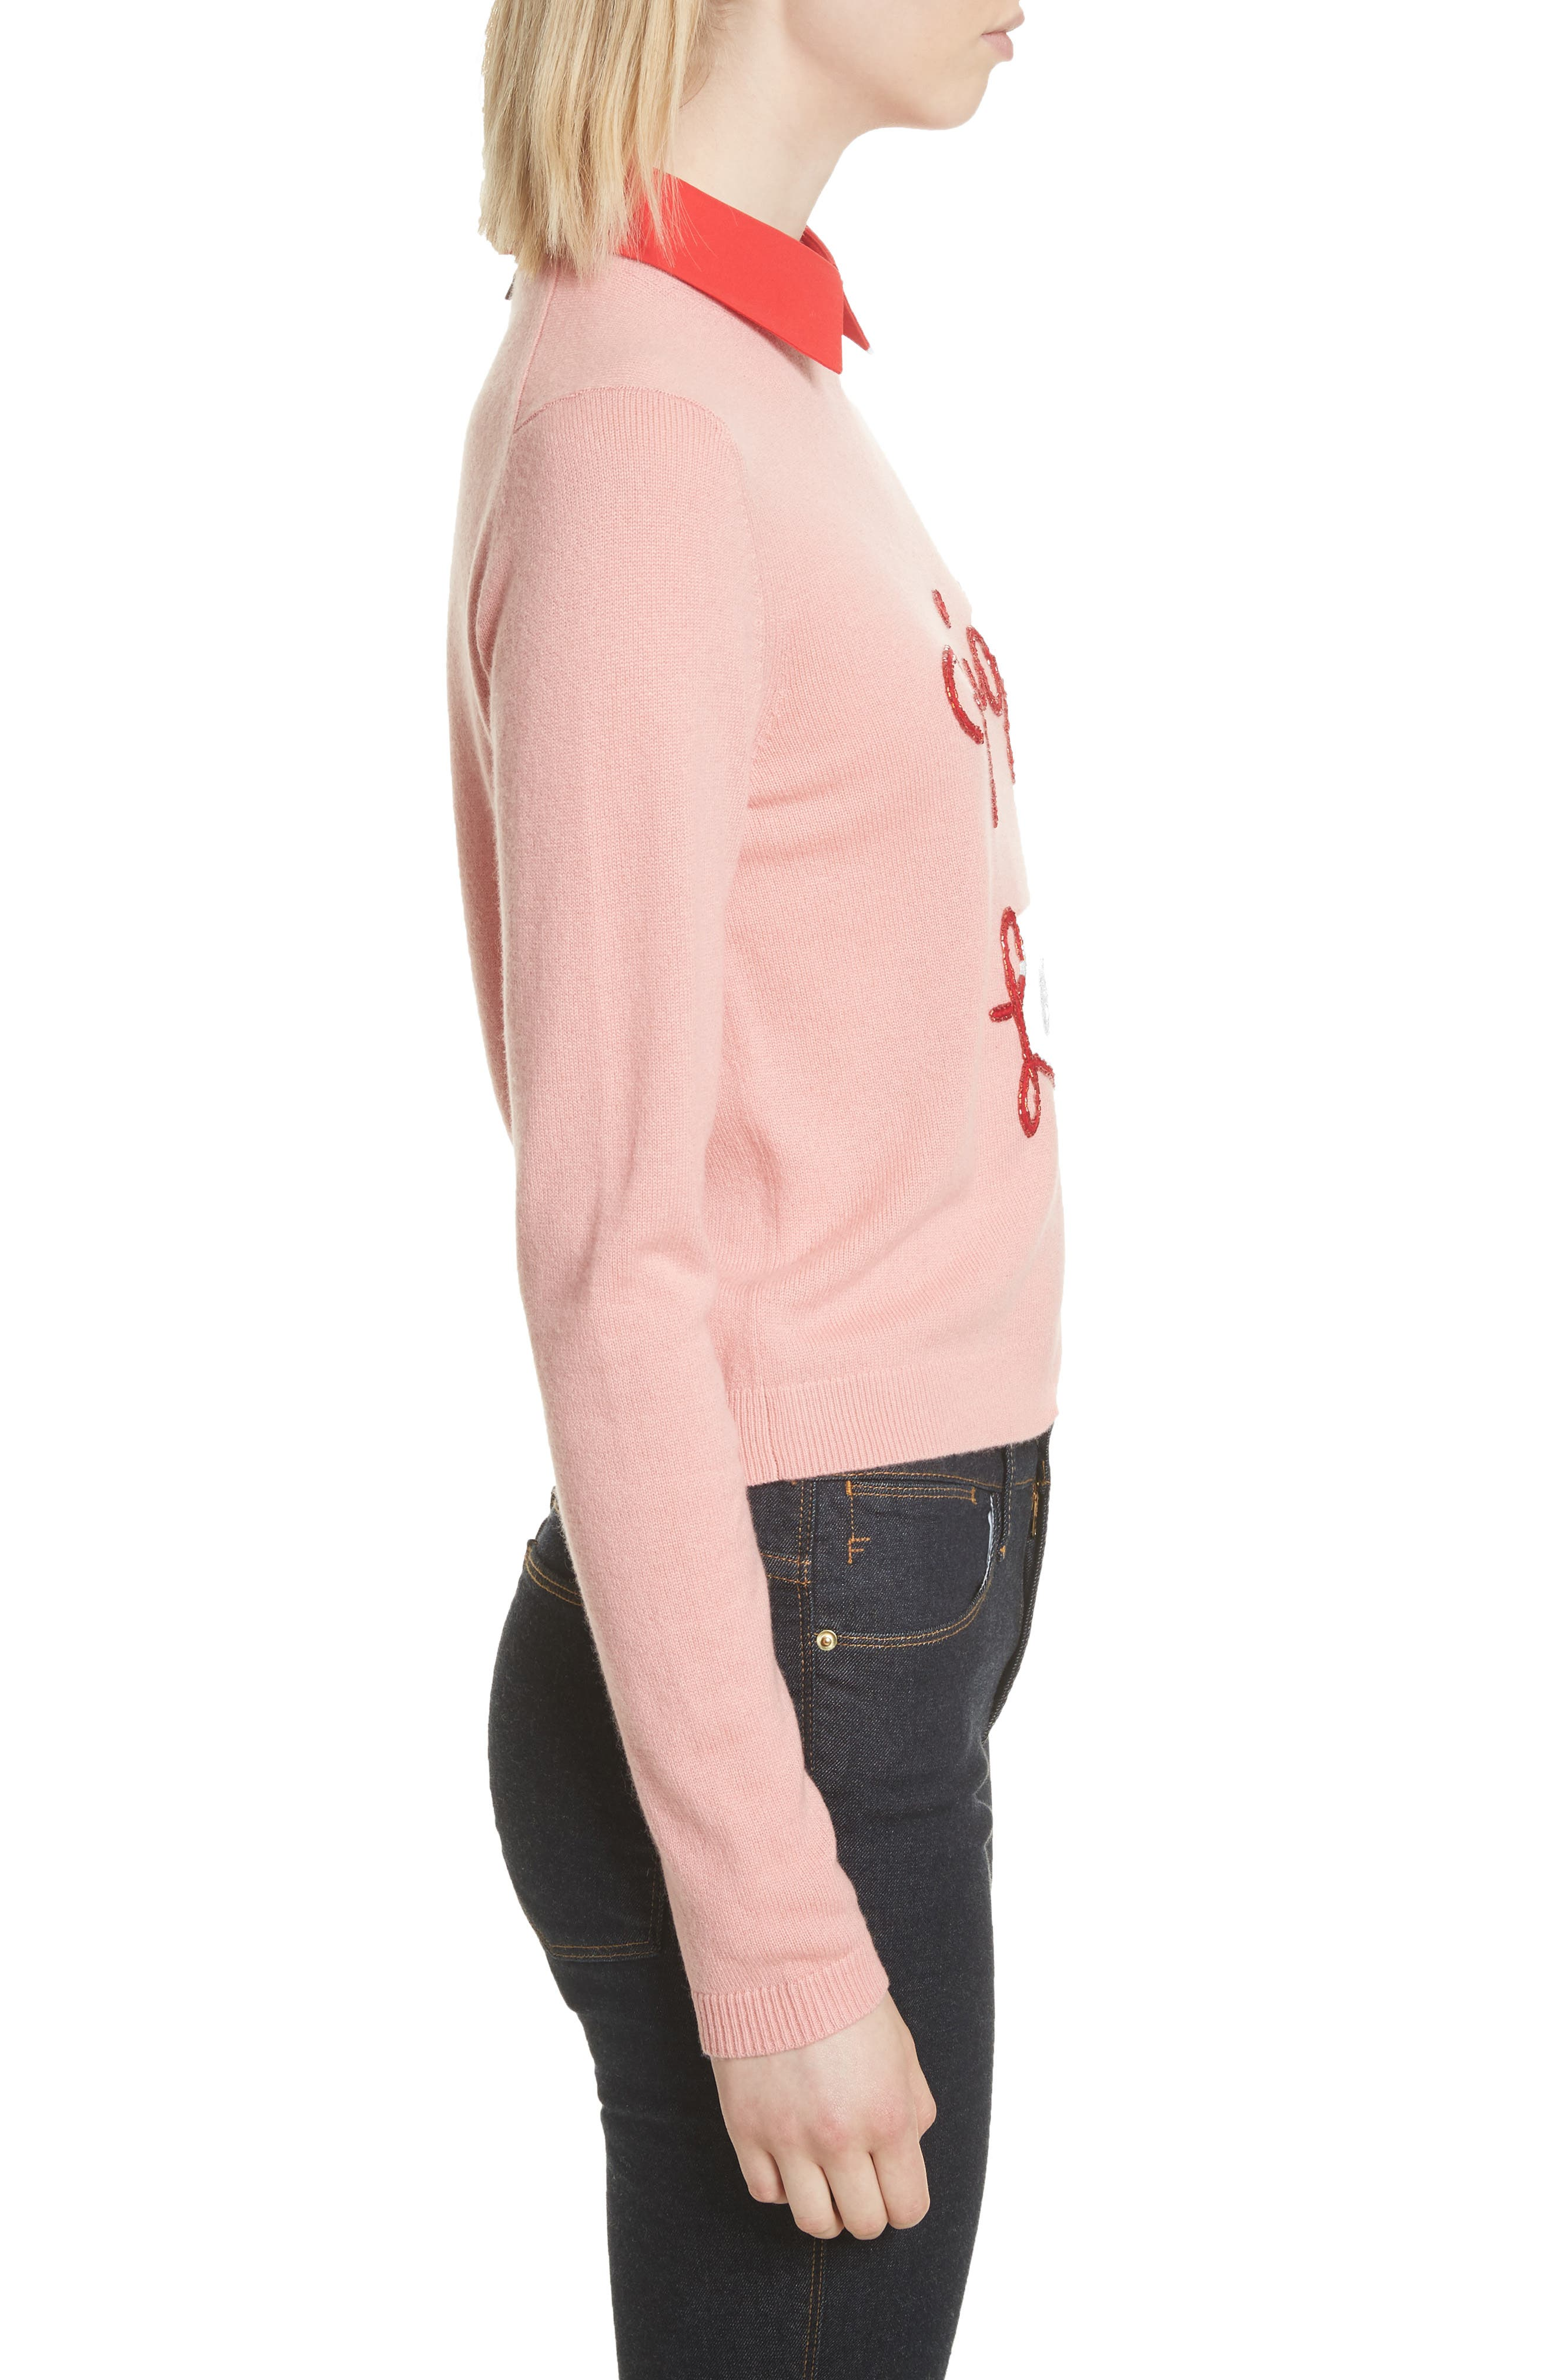 Big Love Embroidered Cashmere Sweater,                             Alternate thumbnail 3, color,                             Millennial Pink/ Apple